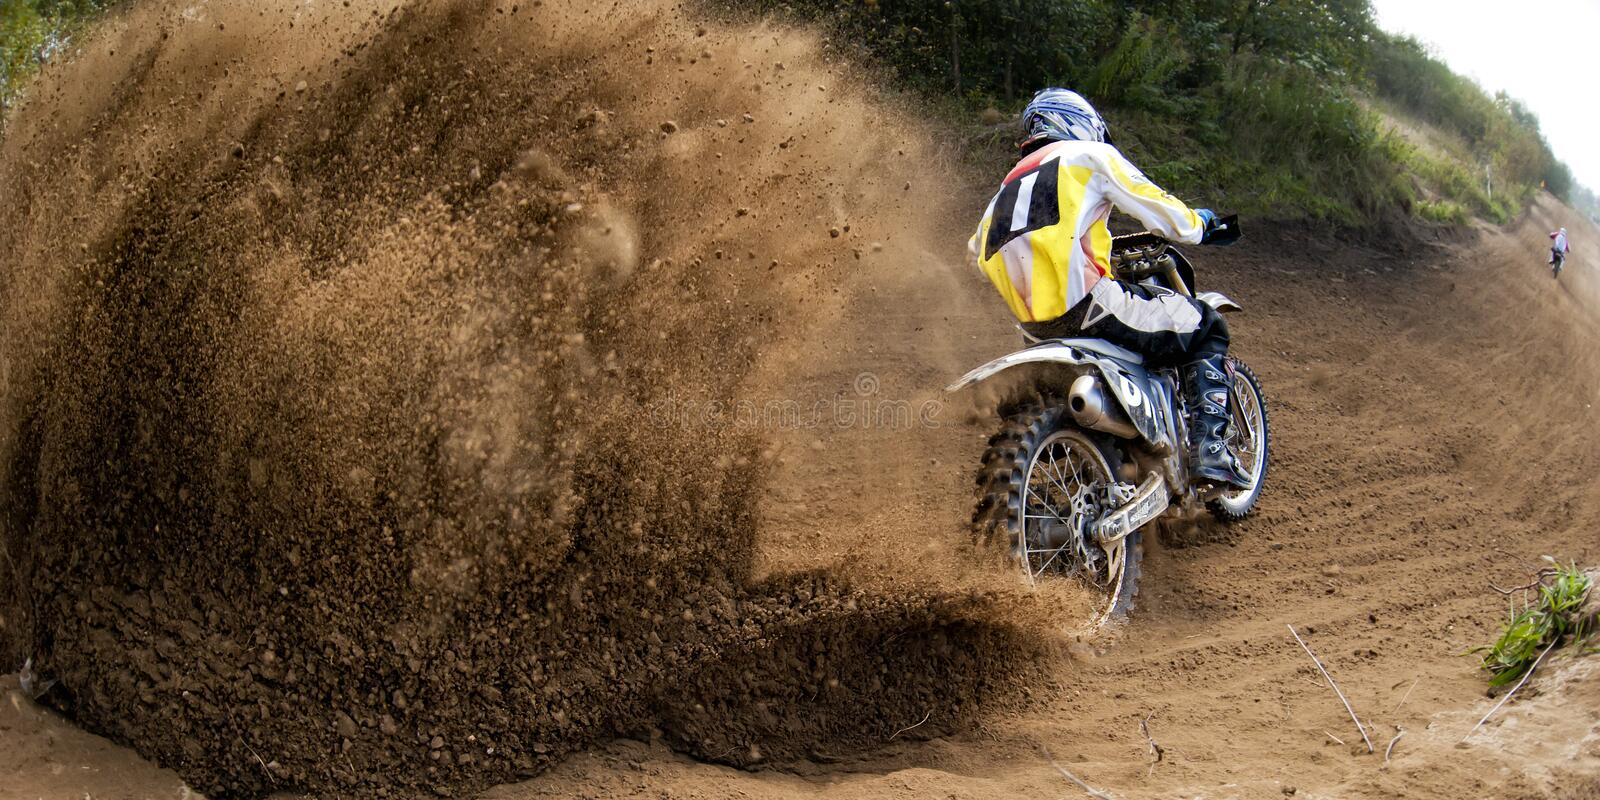 Motocross Driving Race Motorbike royalty free stock images